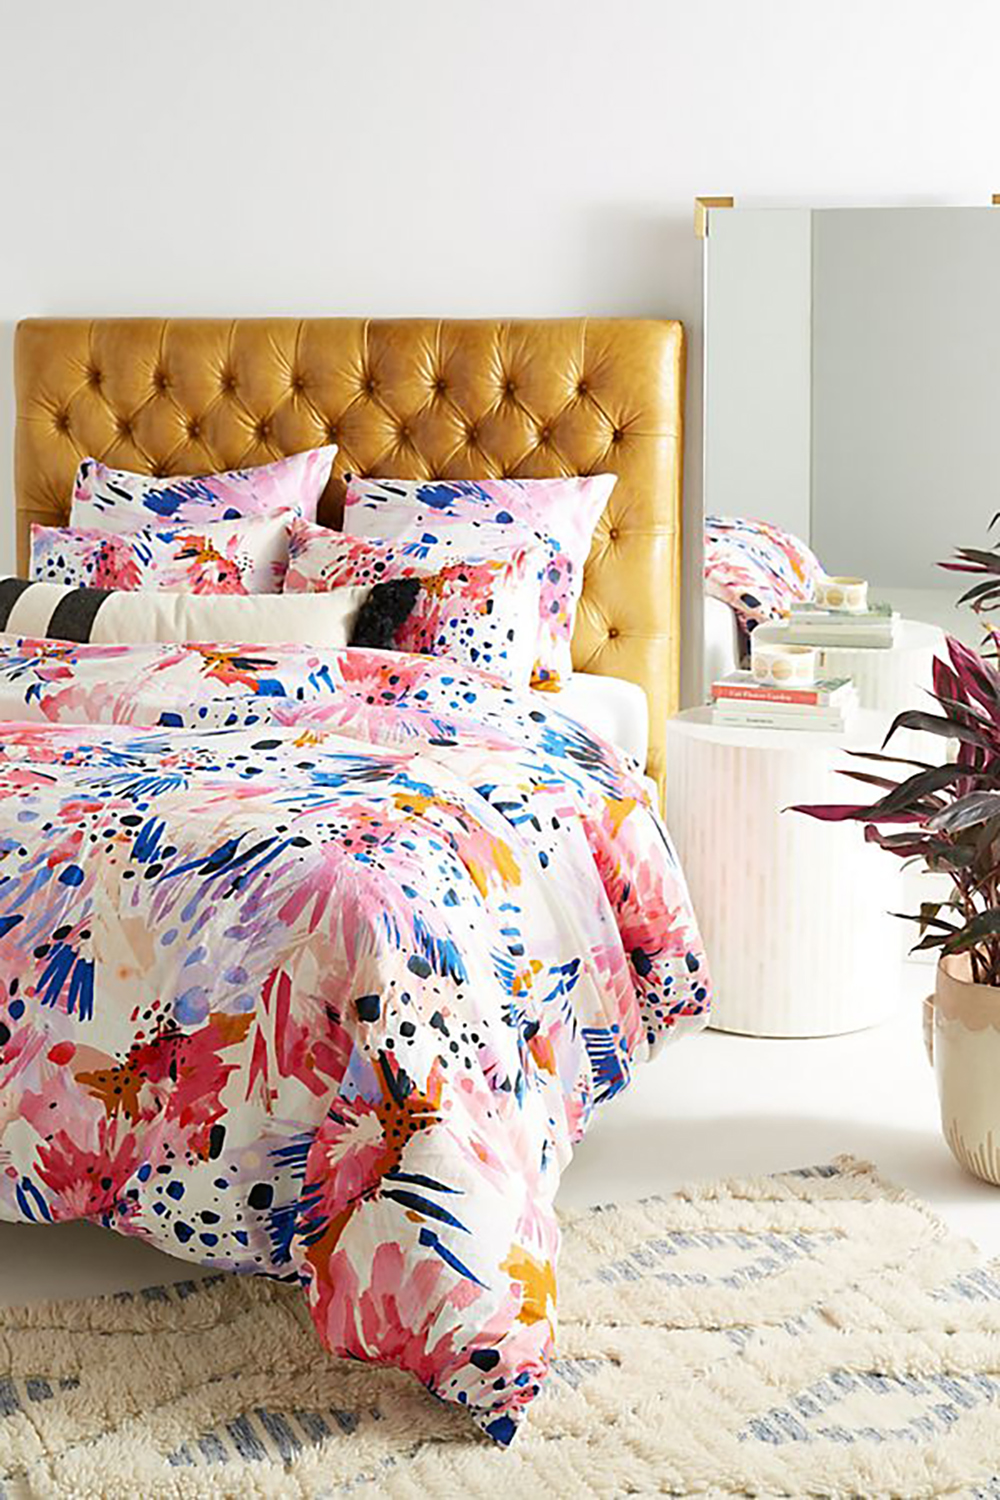 Lillian Farag floral duvet cover - How to give life to your interior with floral pattern? | Aliz's Wonderland